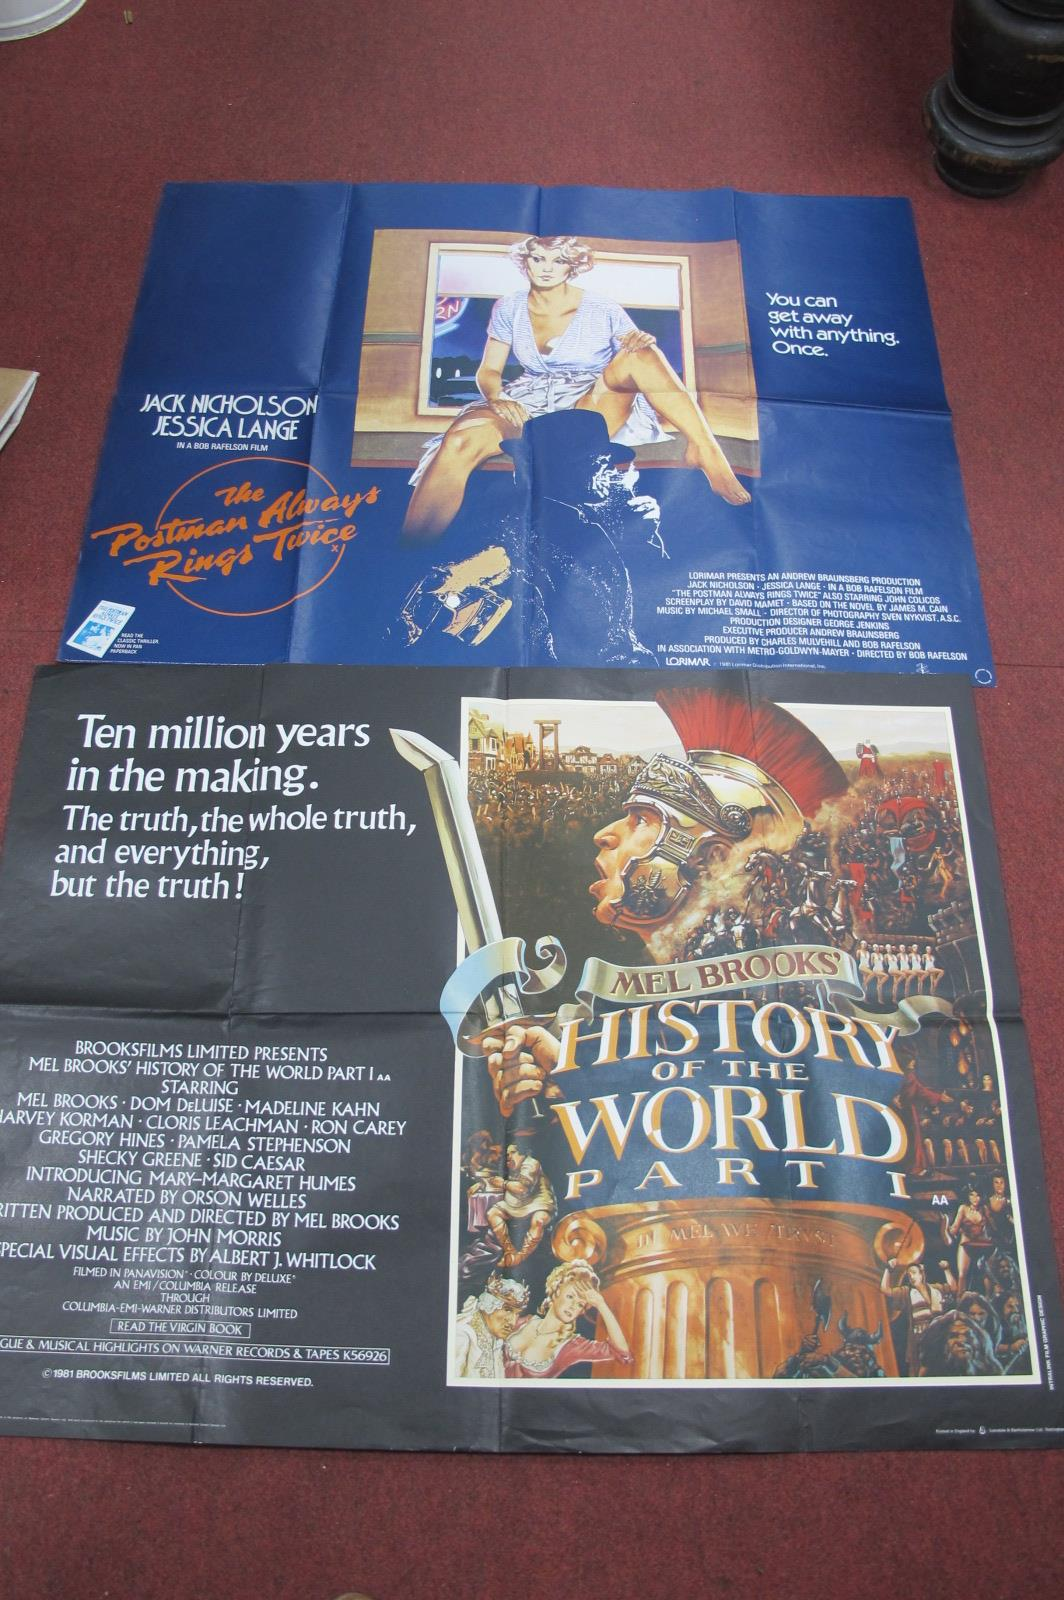 Film Posters. Quad size, 'The History of the World Part 1' and 'The Postman Always Rings Twice',